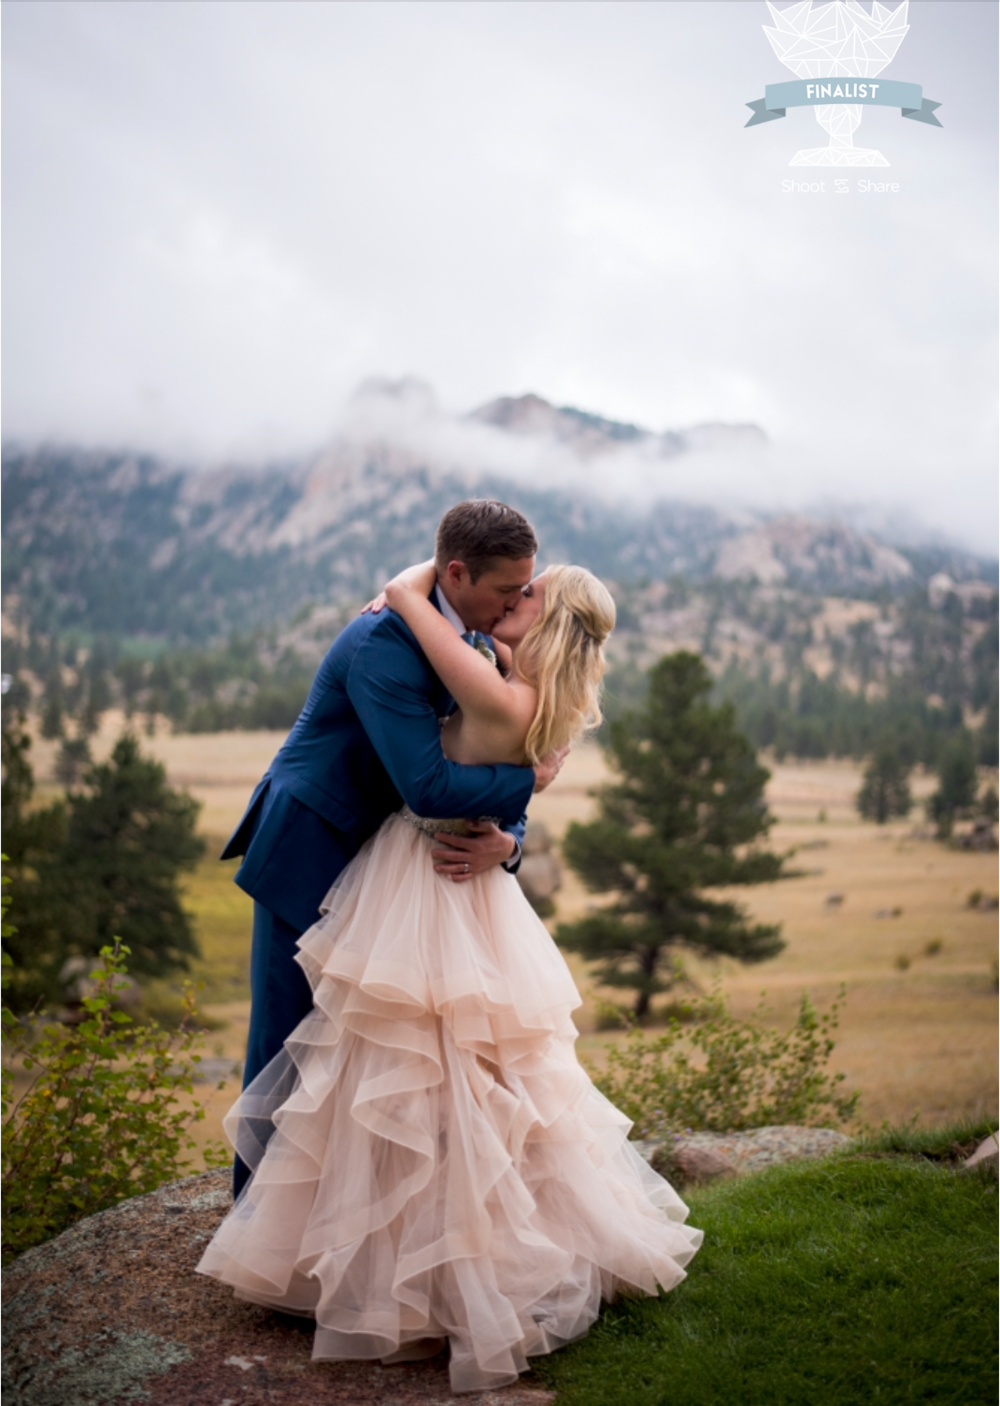 Estes Park Wedding - The Wedding Couple Category - 314/35,527